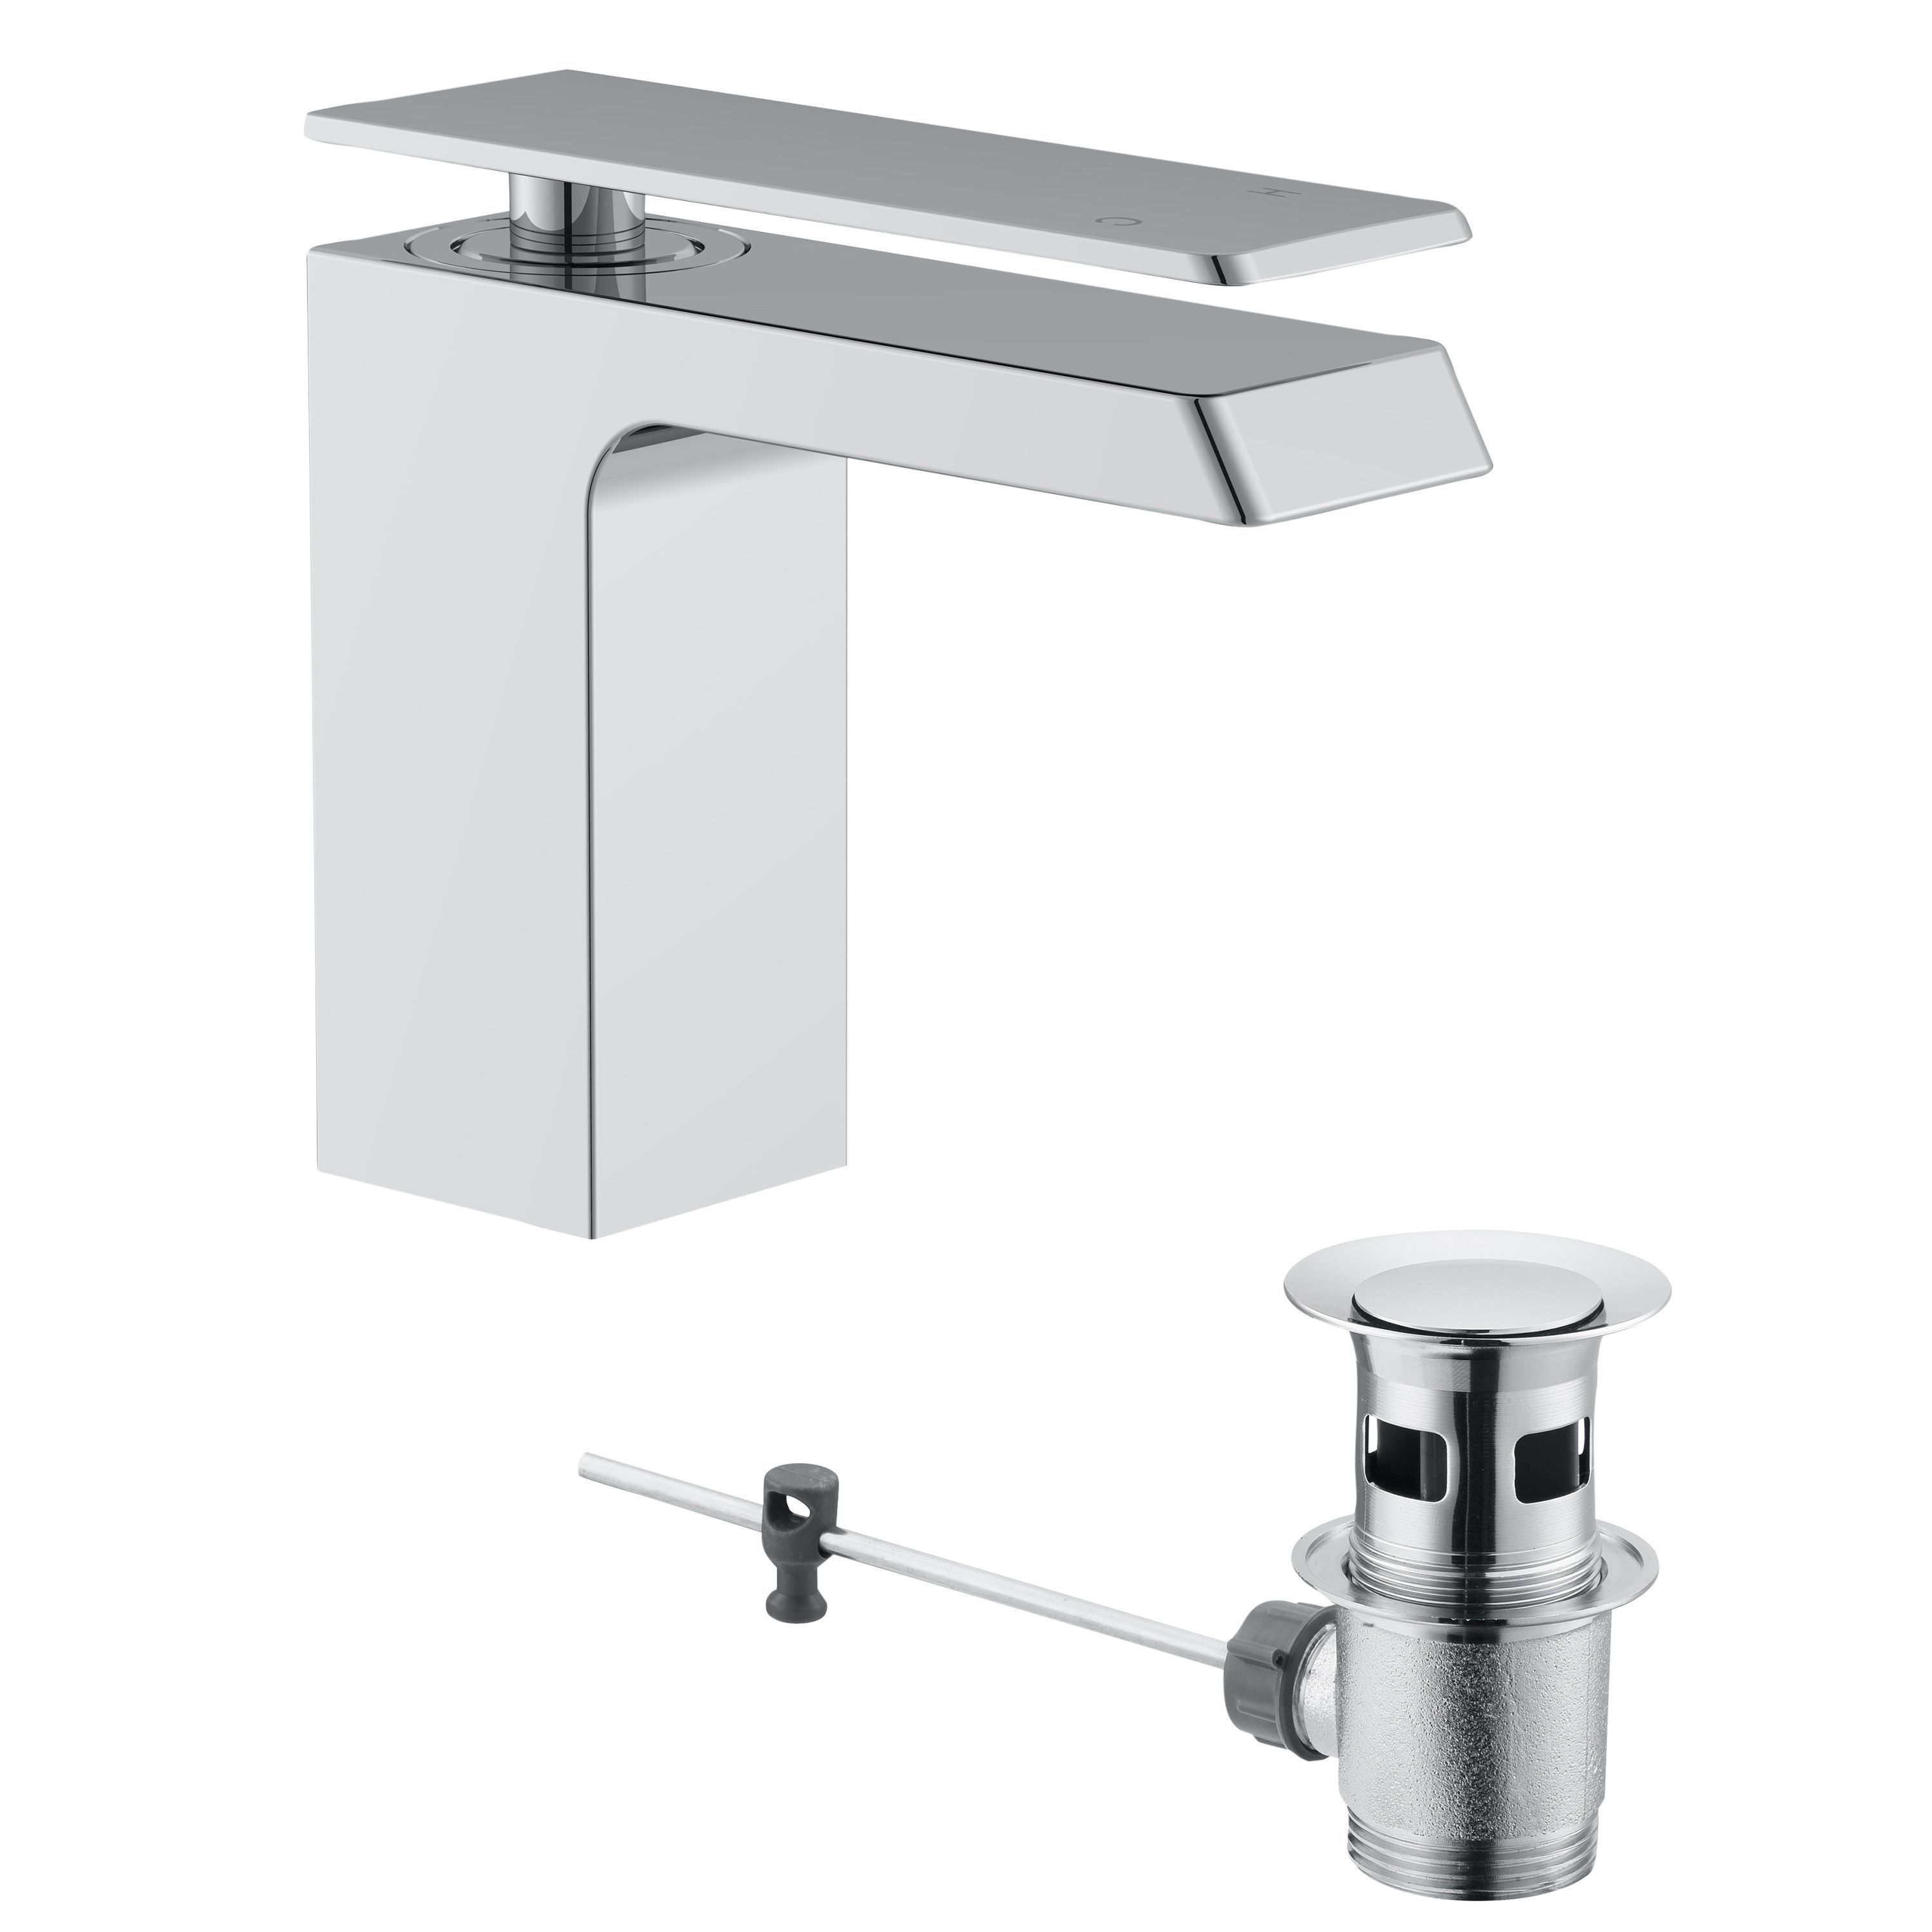 Cooke Lewis Harlyn 1 Lever Basin Mixer Tap B Q For All Your Home